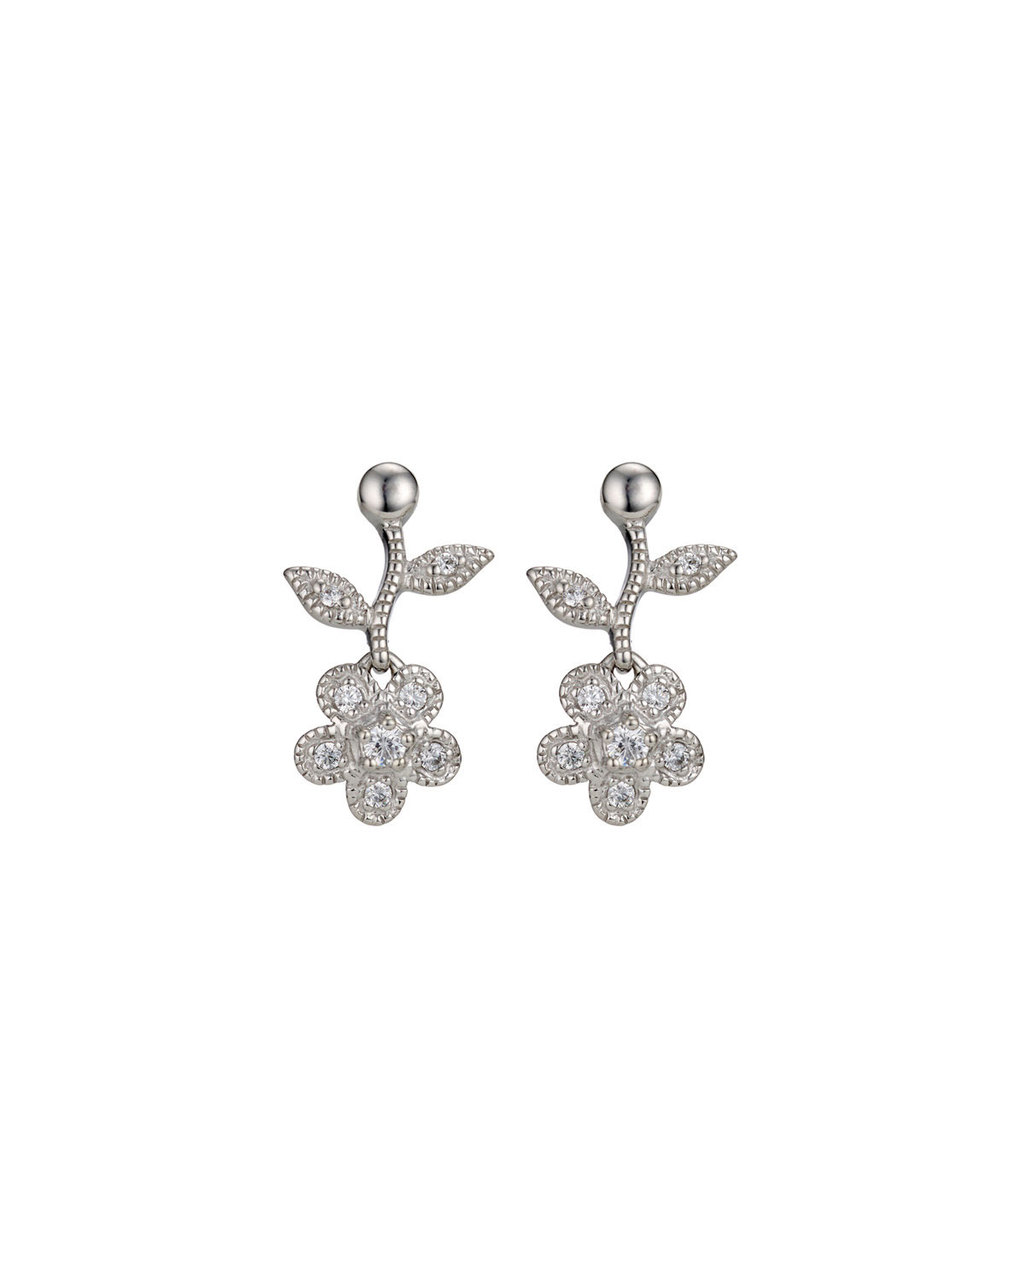 Cubic Zirconia Flower Drop Earrings - predominant colour: silver; occasions: evening, occasion; style: drop; length: mid; size: standard; material: chain/metal; fastening: pierced; finish: metallic; embellishment: crystals/glass; season: s/s 2016; wardrobe: event